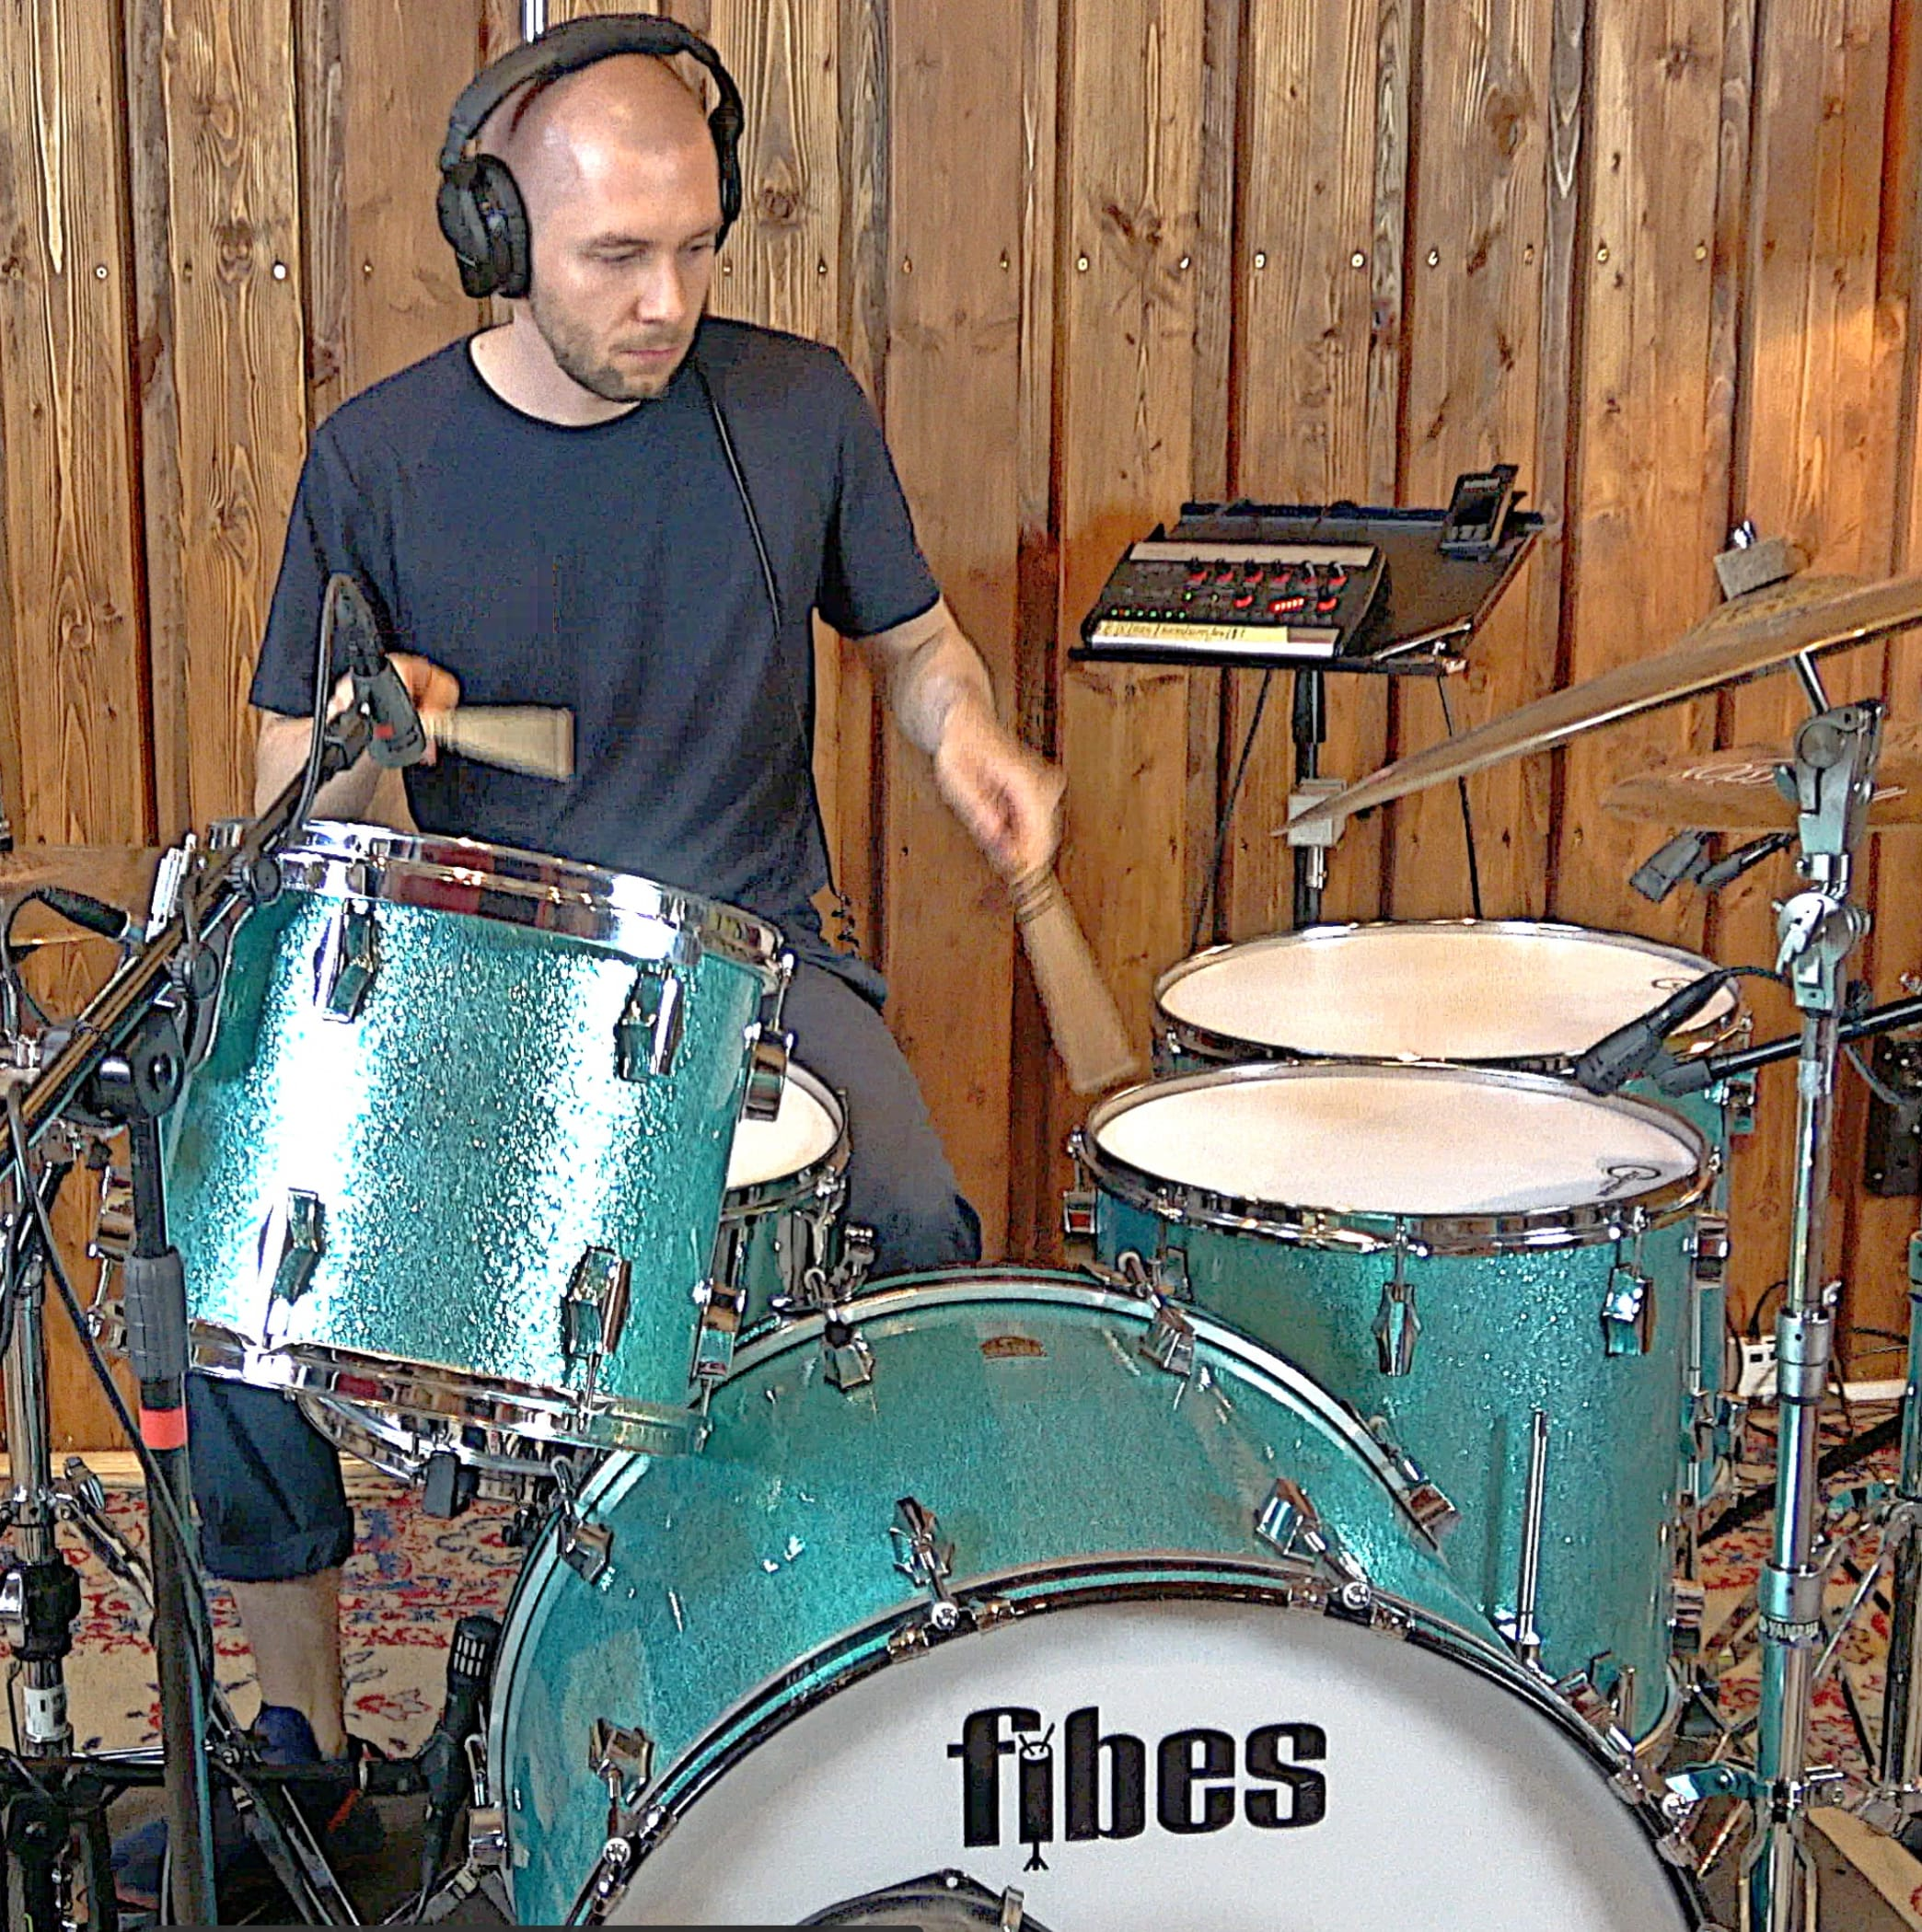 Fibes Drums beatit.tv